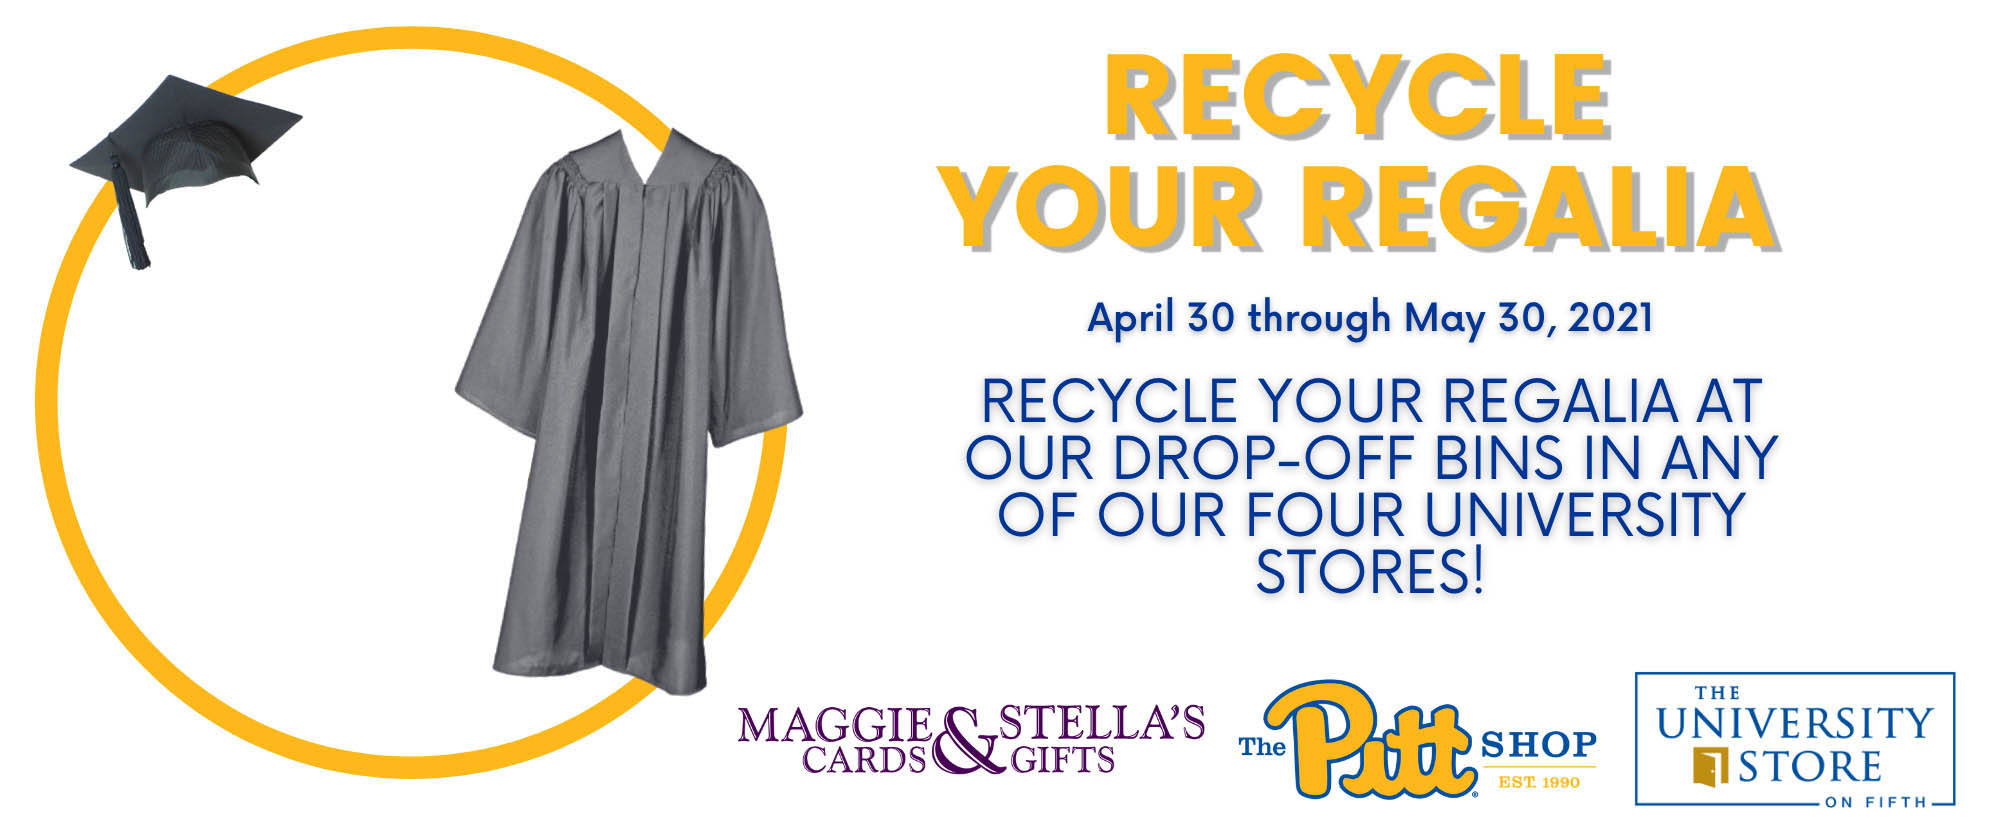 recycle your regalia at the university stores